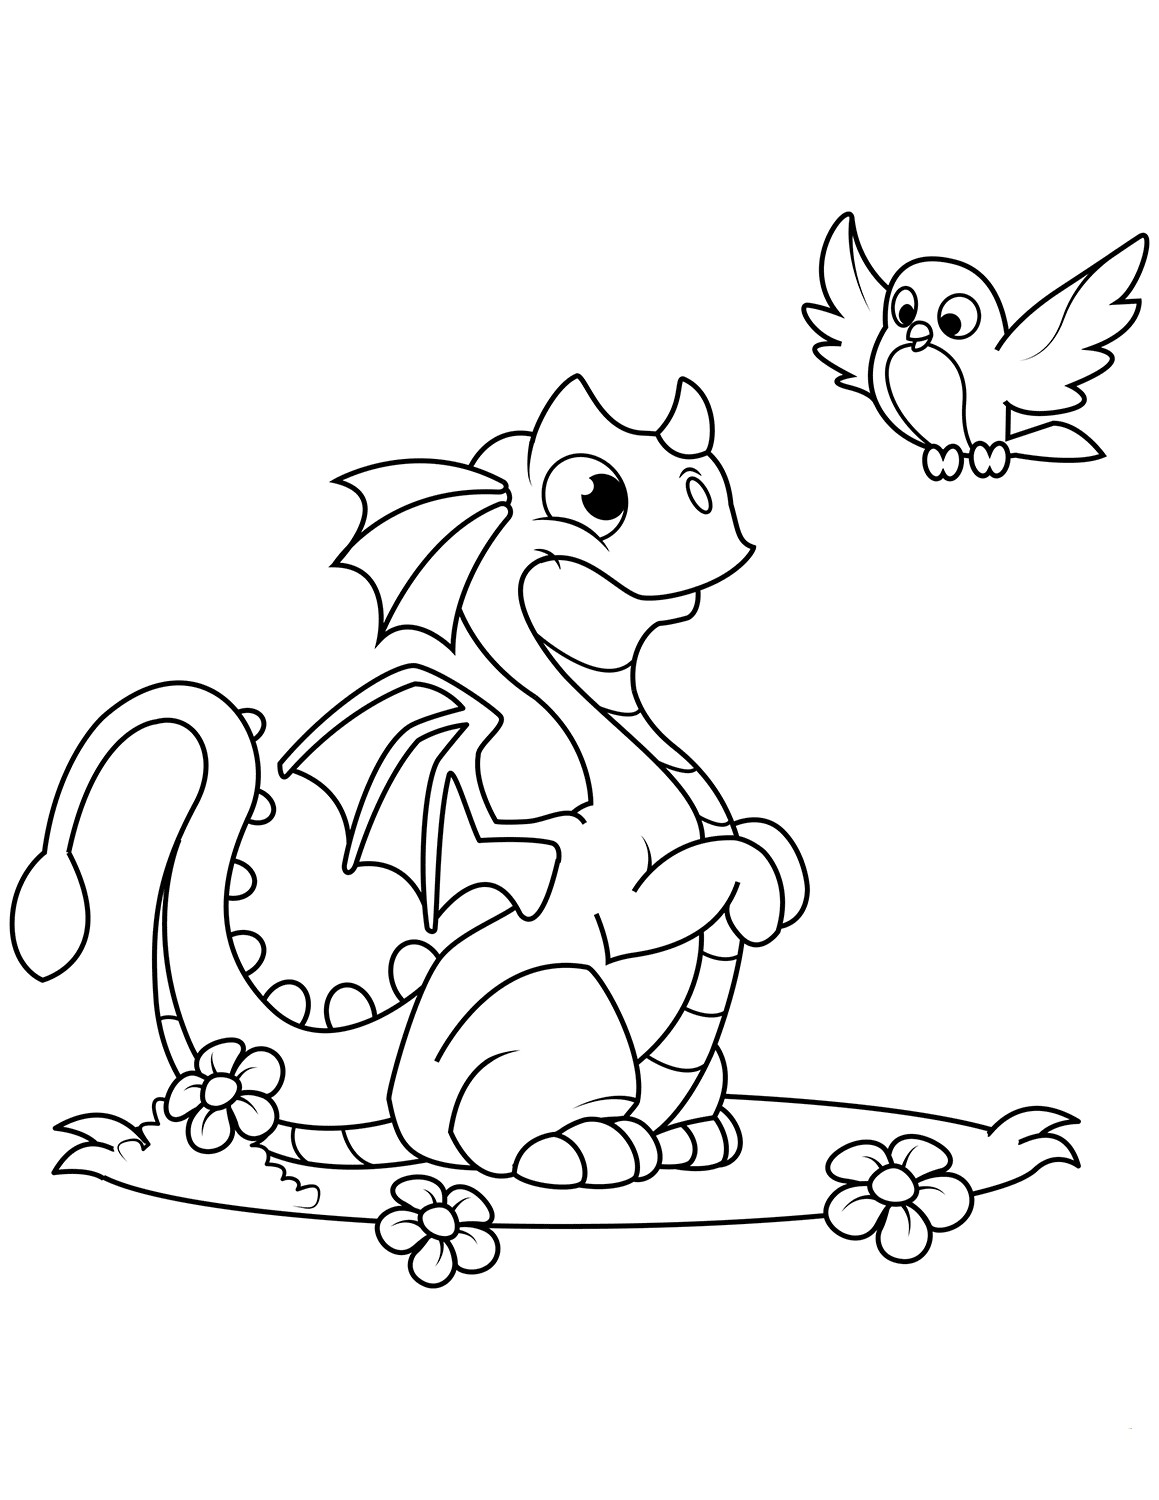 dragon coloring pages free coloring pages dragon coloring pages free and printable free dragon coloring pages